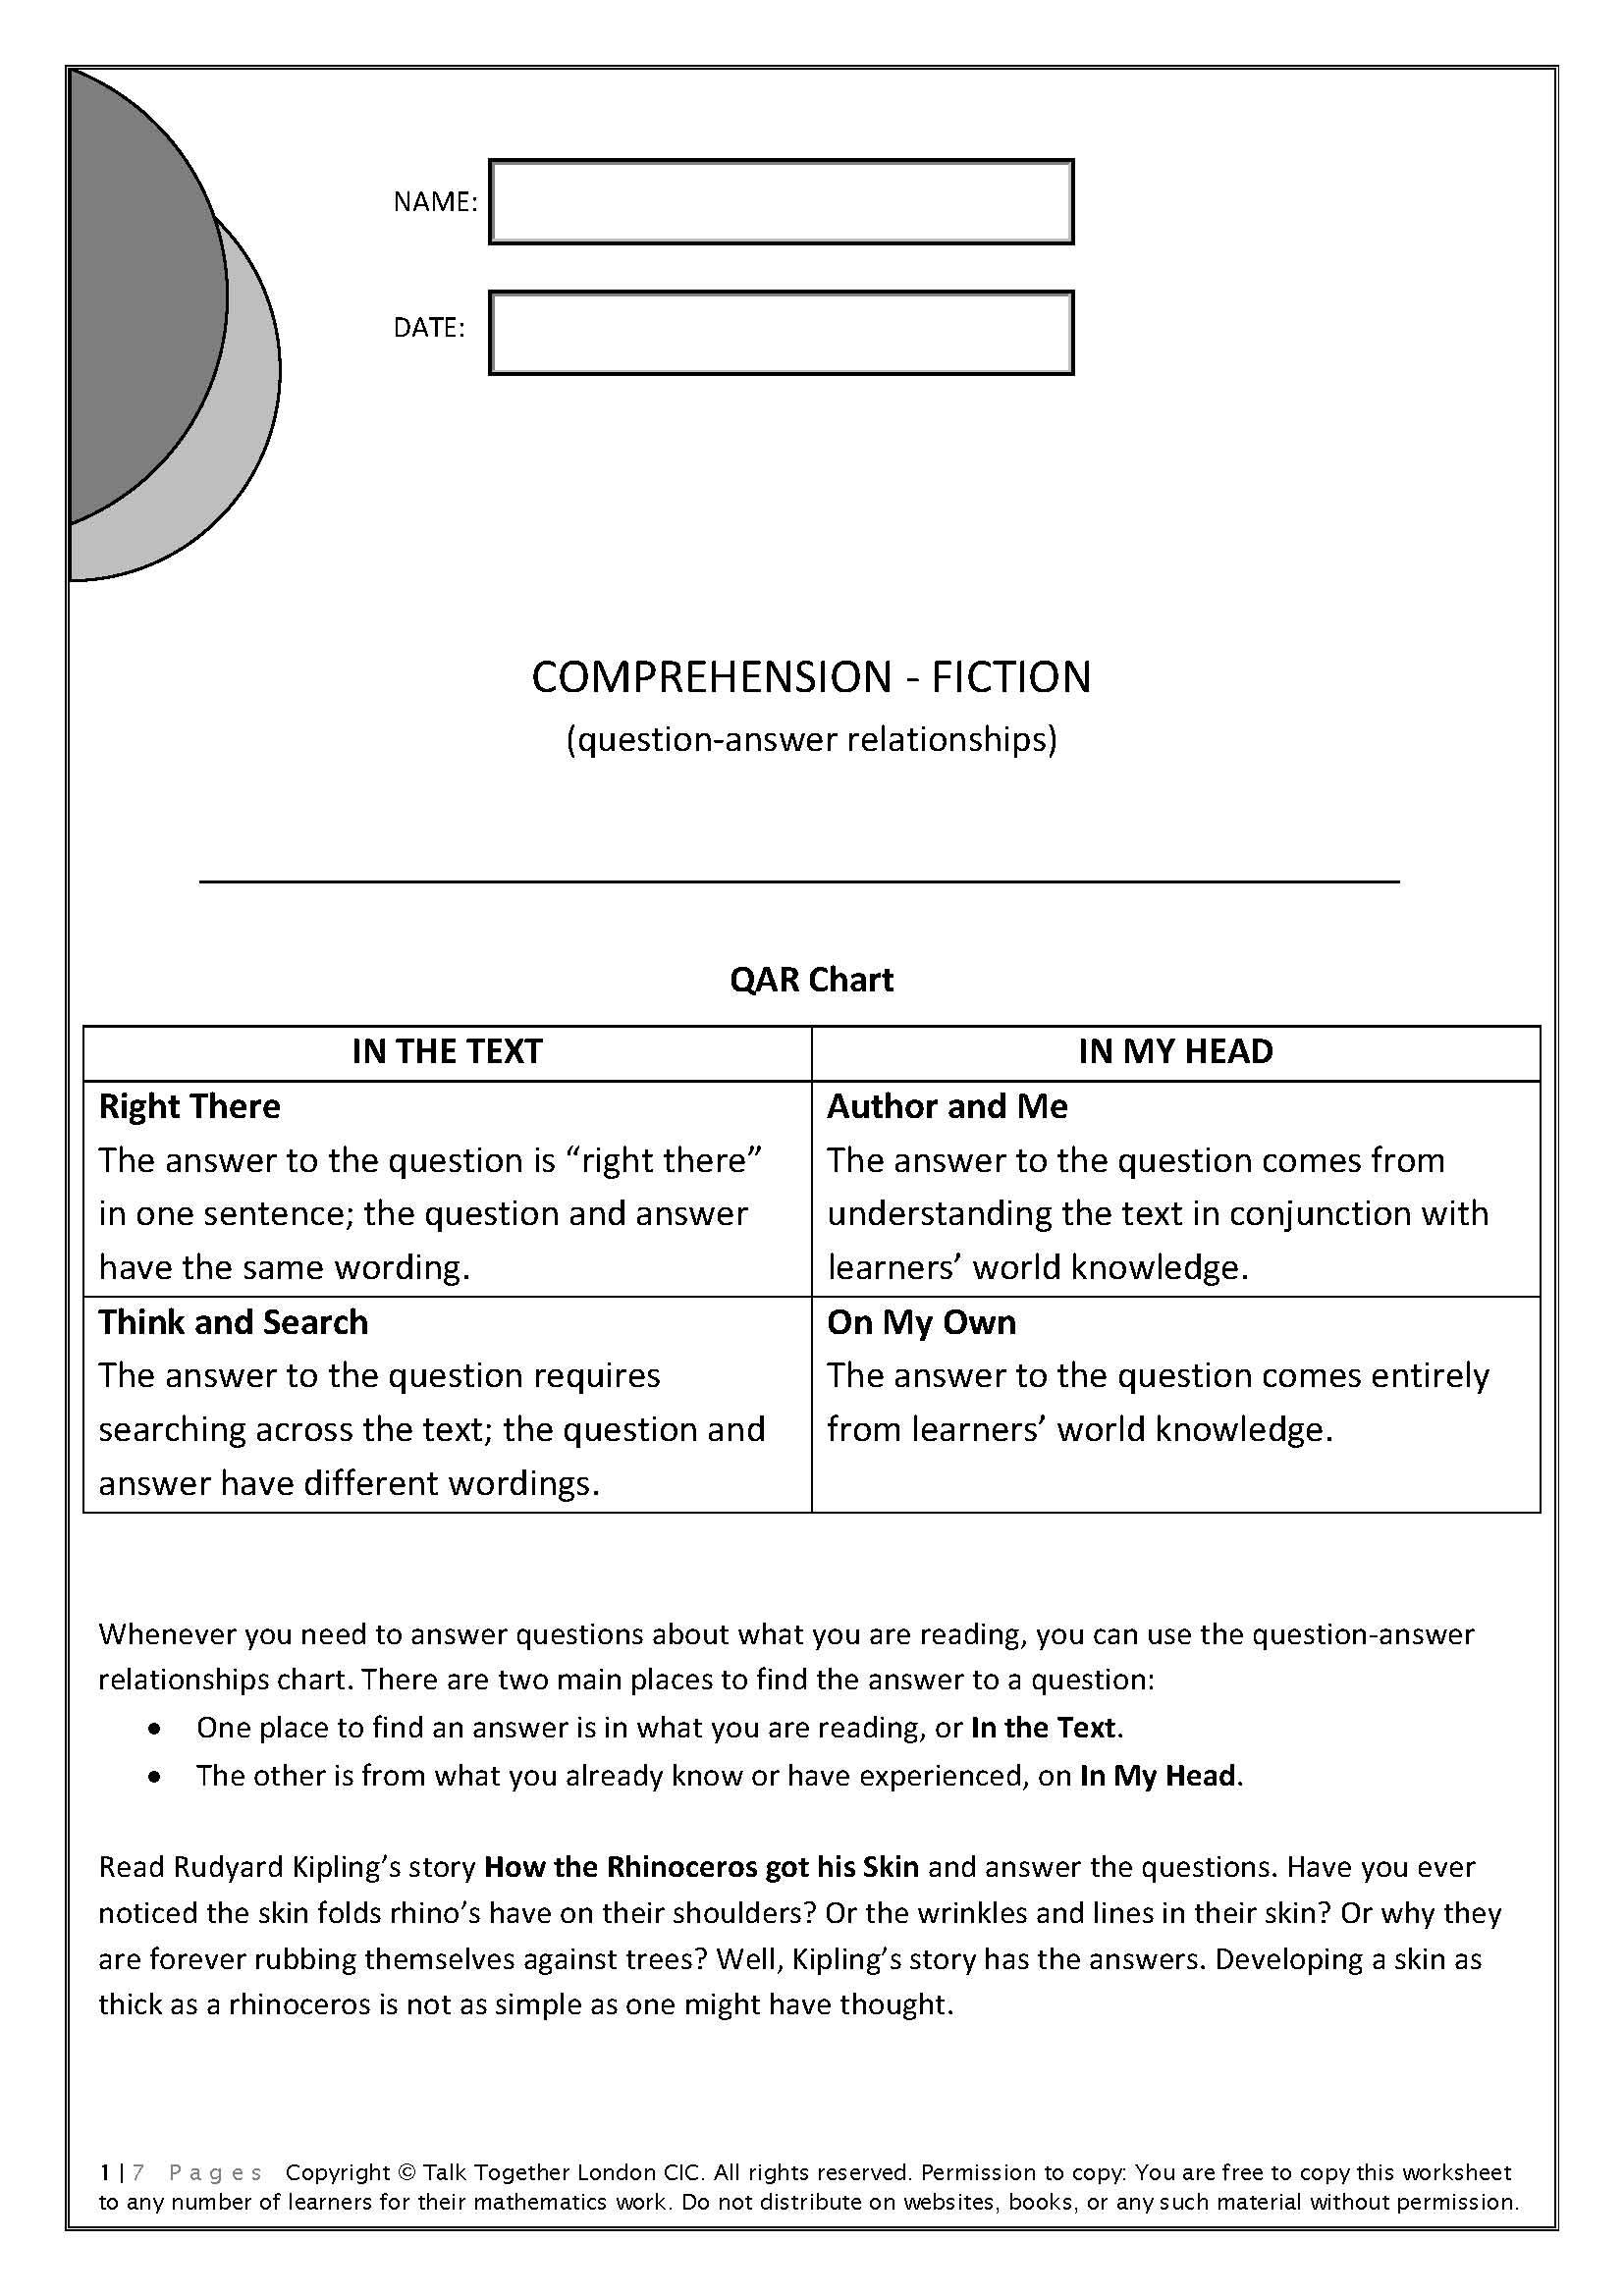 QAR Comprehension Fiction - Worksheet with a Rudyard Kipling story and 28 QAR questions.